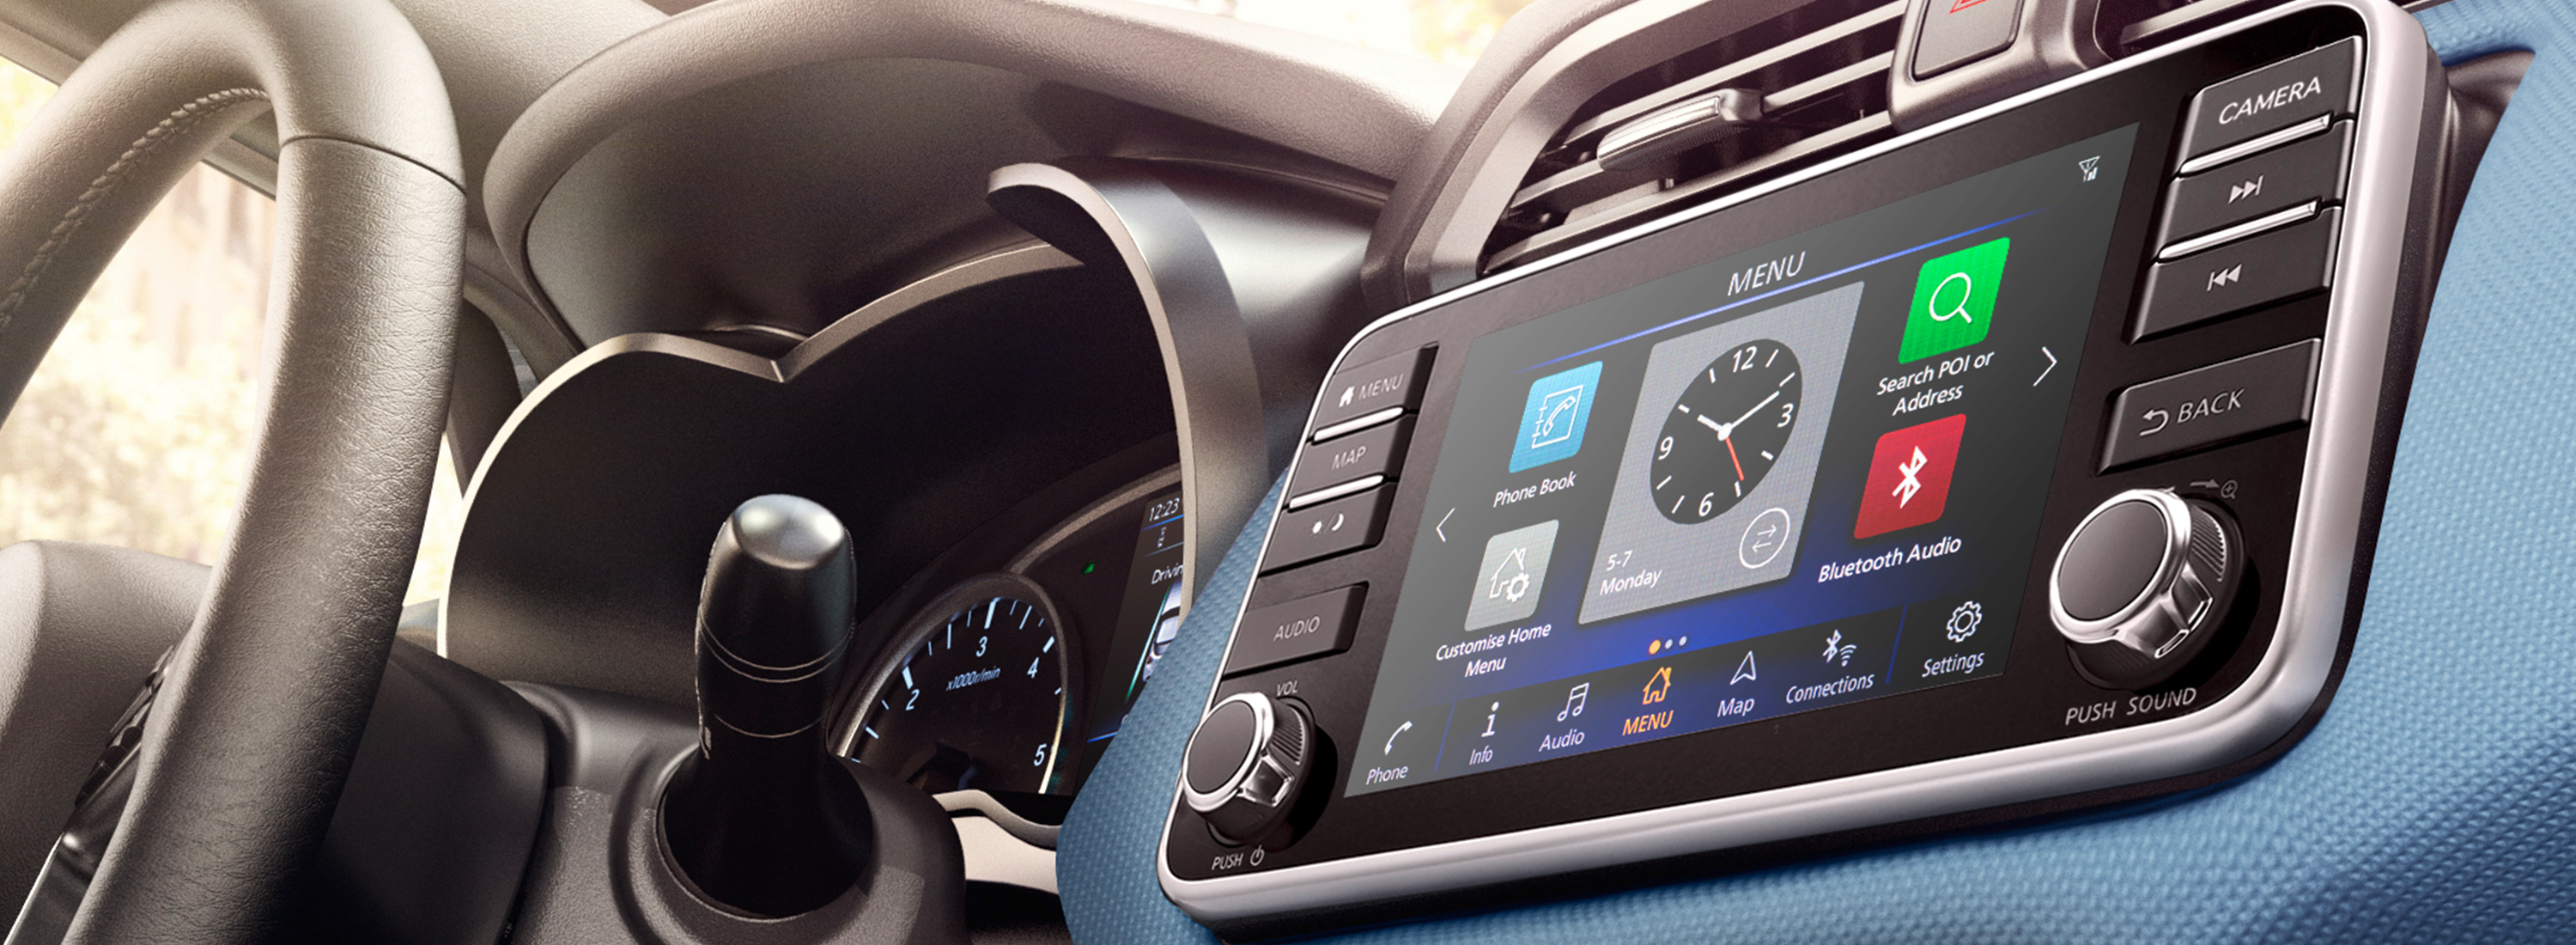 Nissan Micra 7-inch Touch-Screen Display